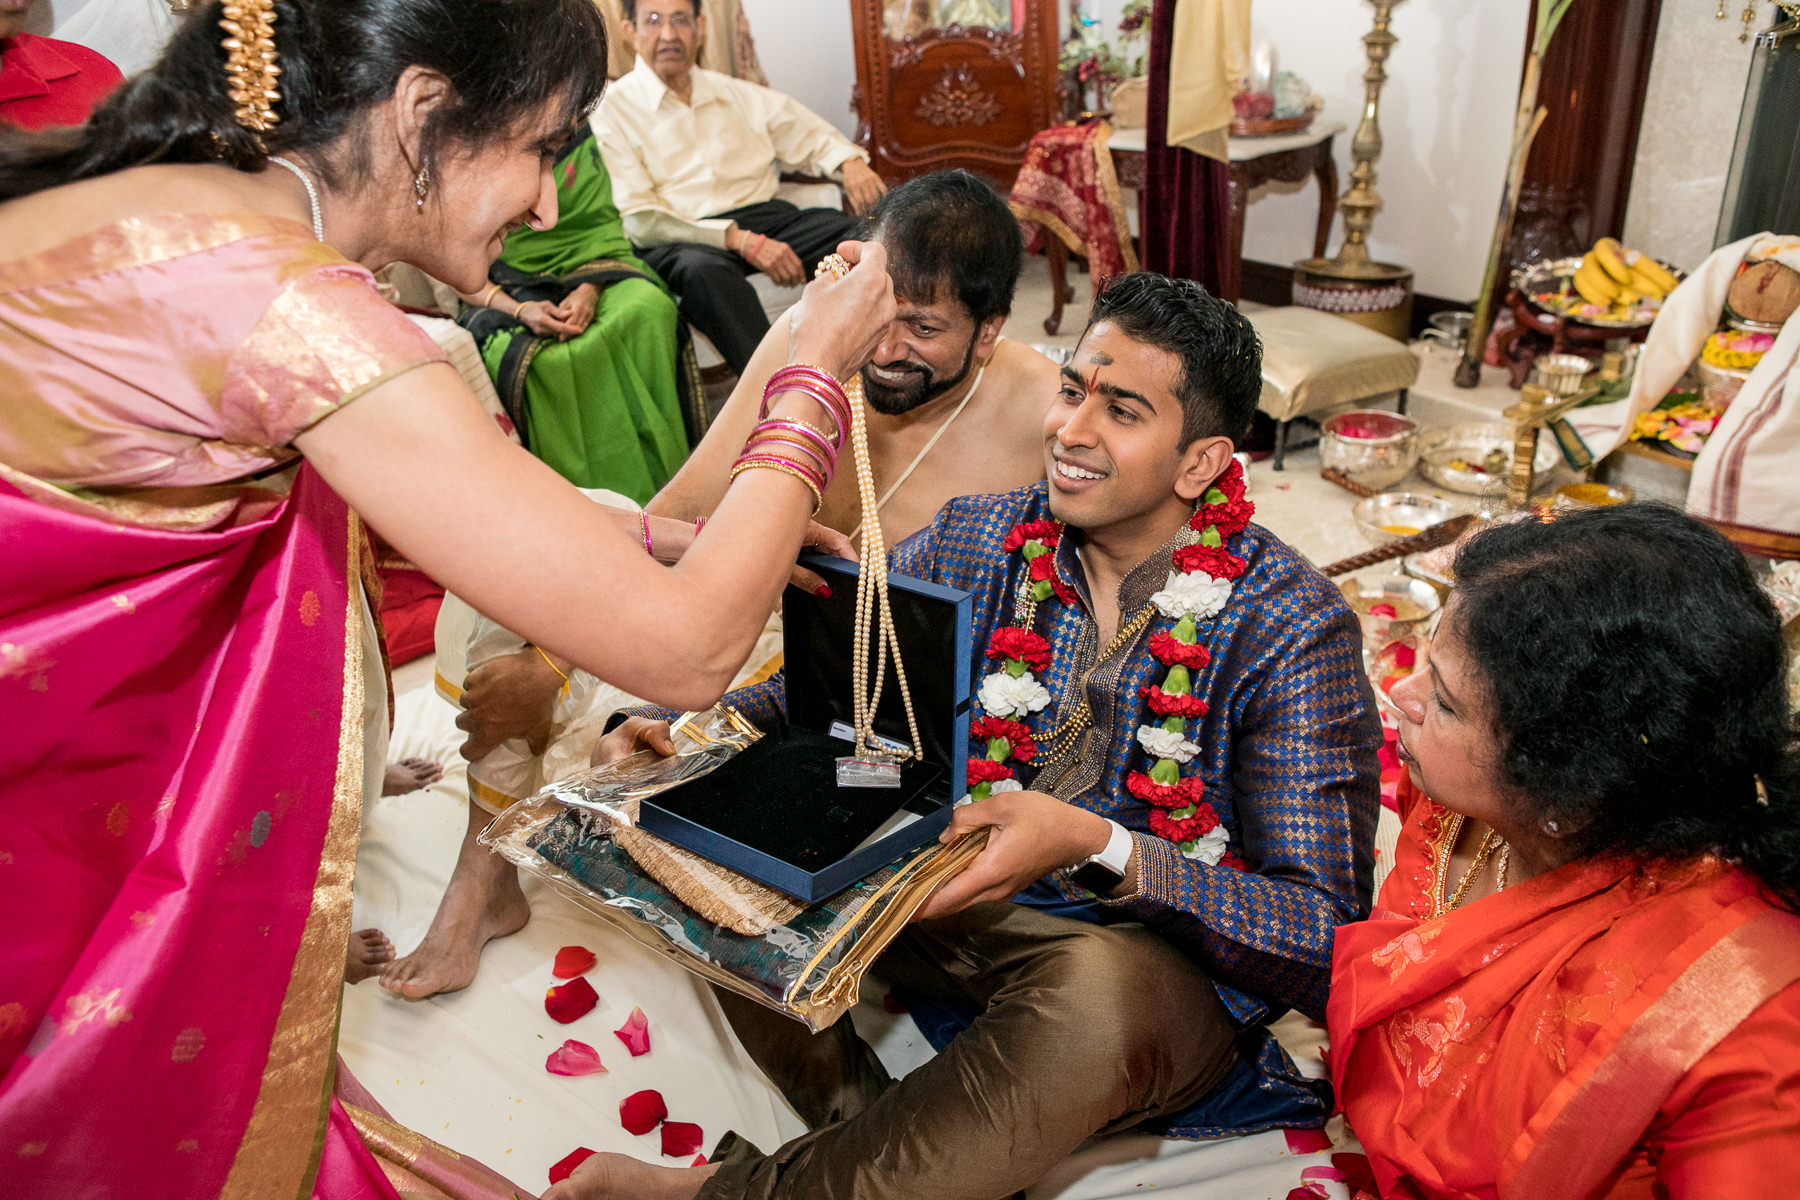 gift of pearls to indian groom by mother in law during indian wedding ritual